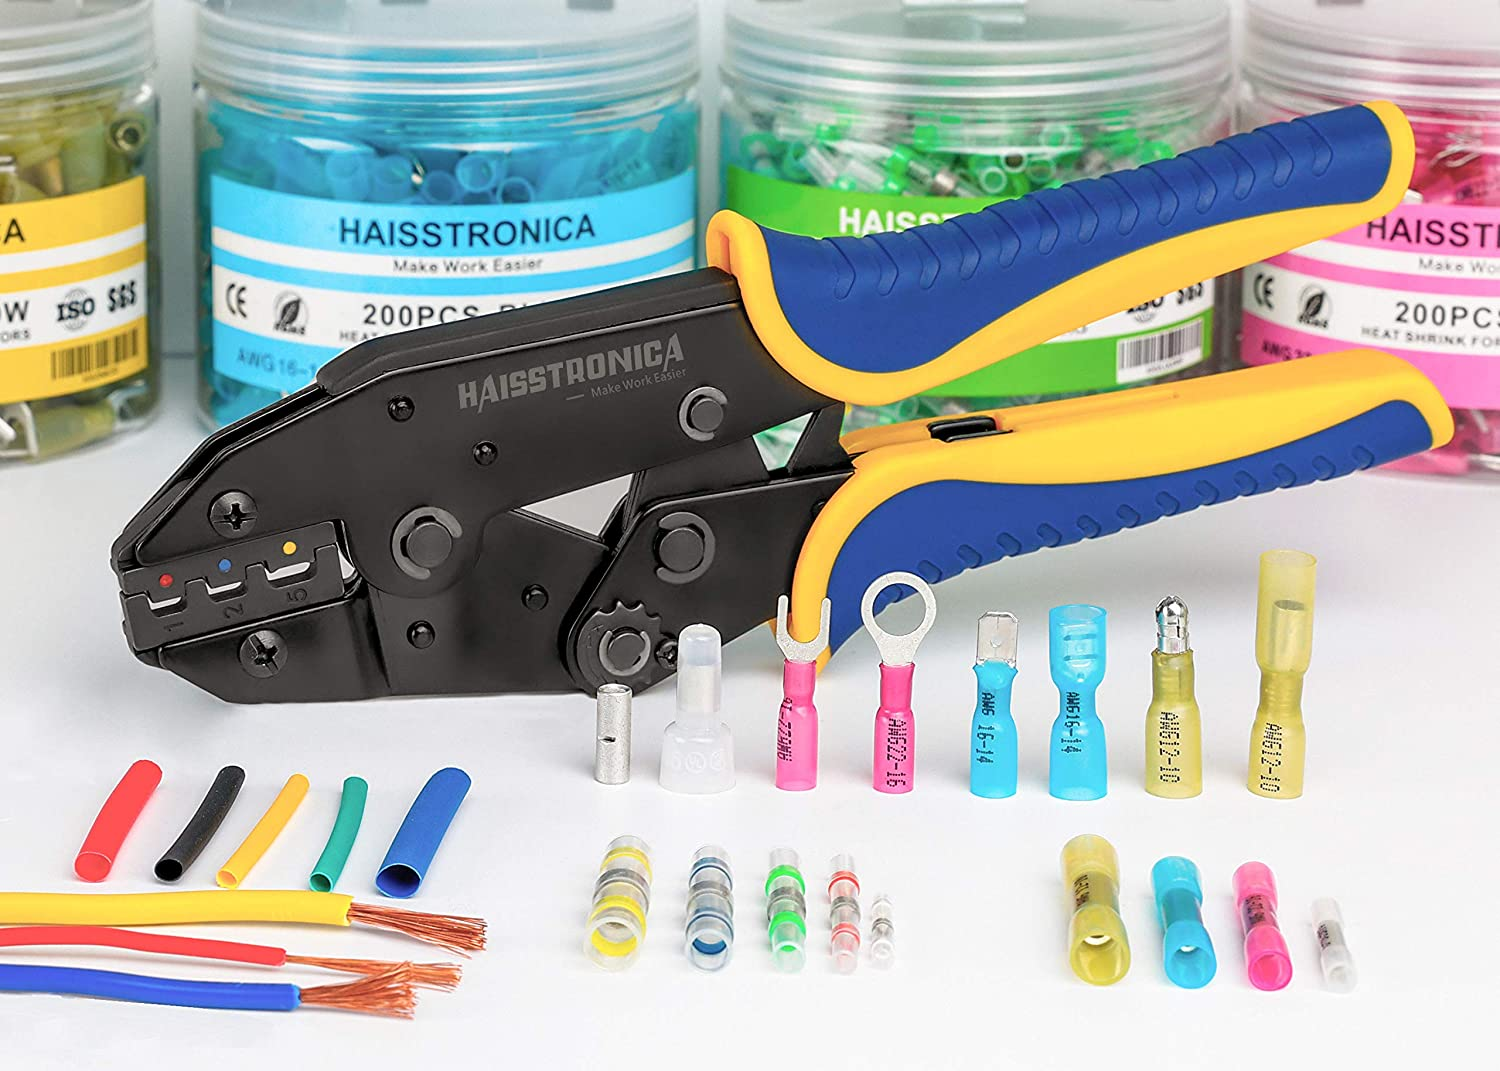 Haisstronica 200pcs 5//16 Blue Marine Grade Heat Shrink Ring Connectors-Tinned red Copper 0.7mm Ring Terminal Connectors-Heat Shrink Wire Connectors-Insulated Electrical Crimp Terminals 16-14 Gauge